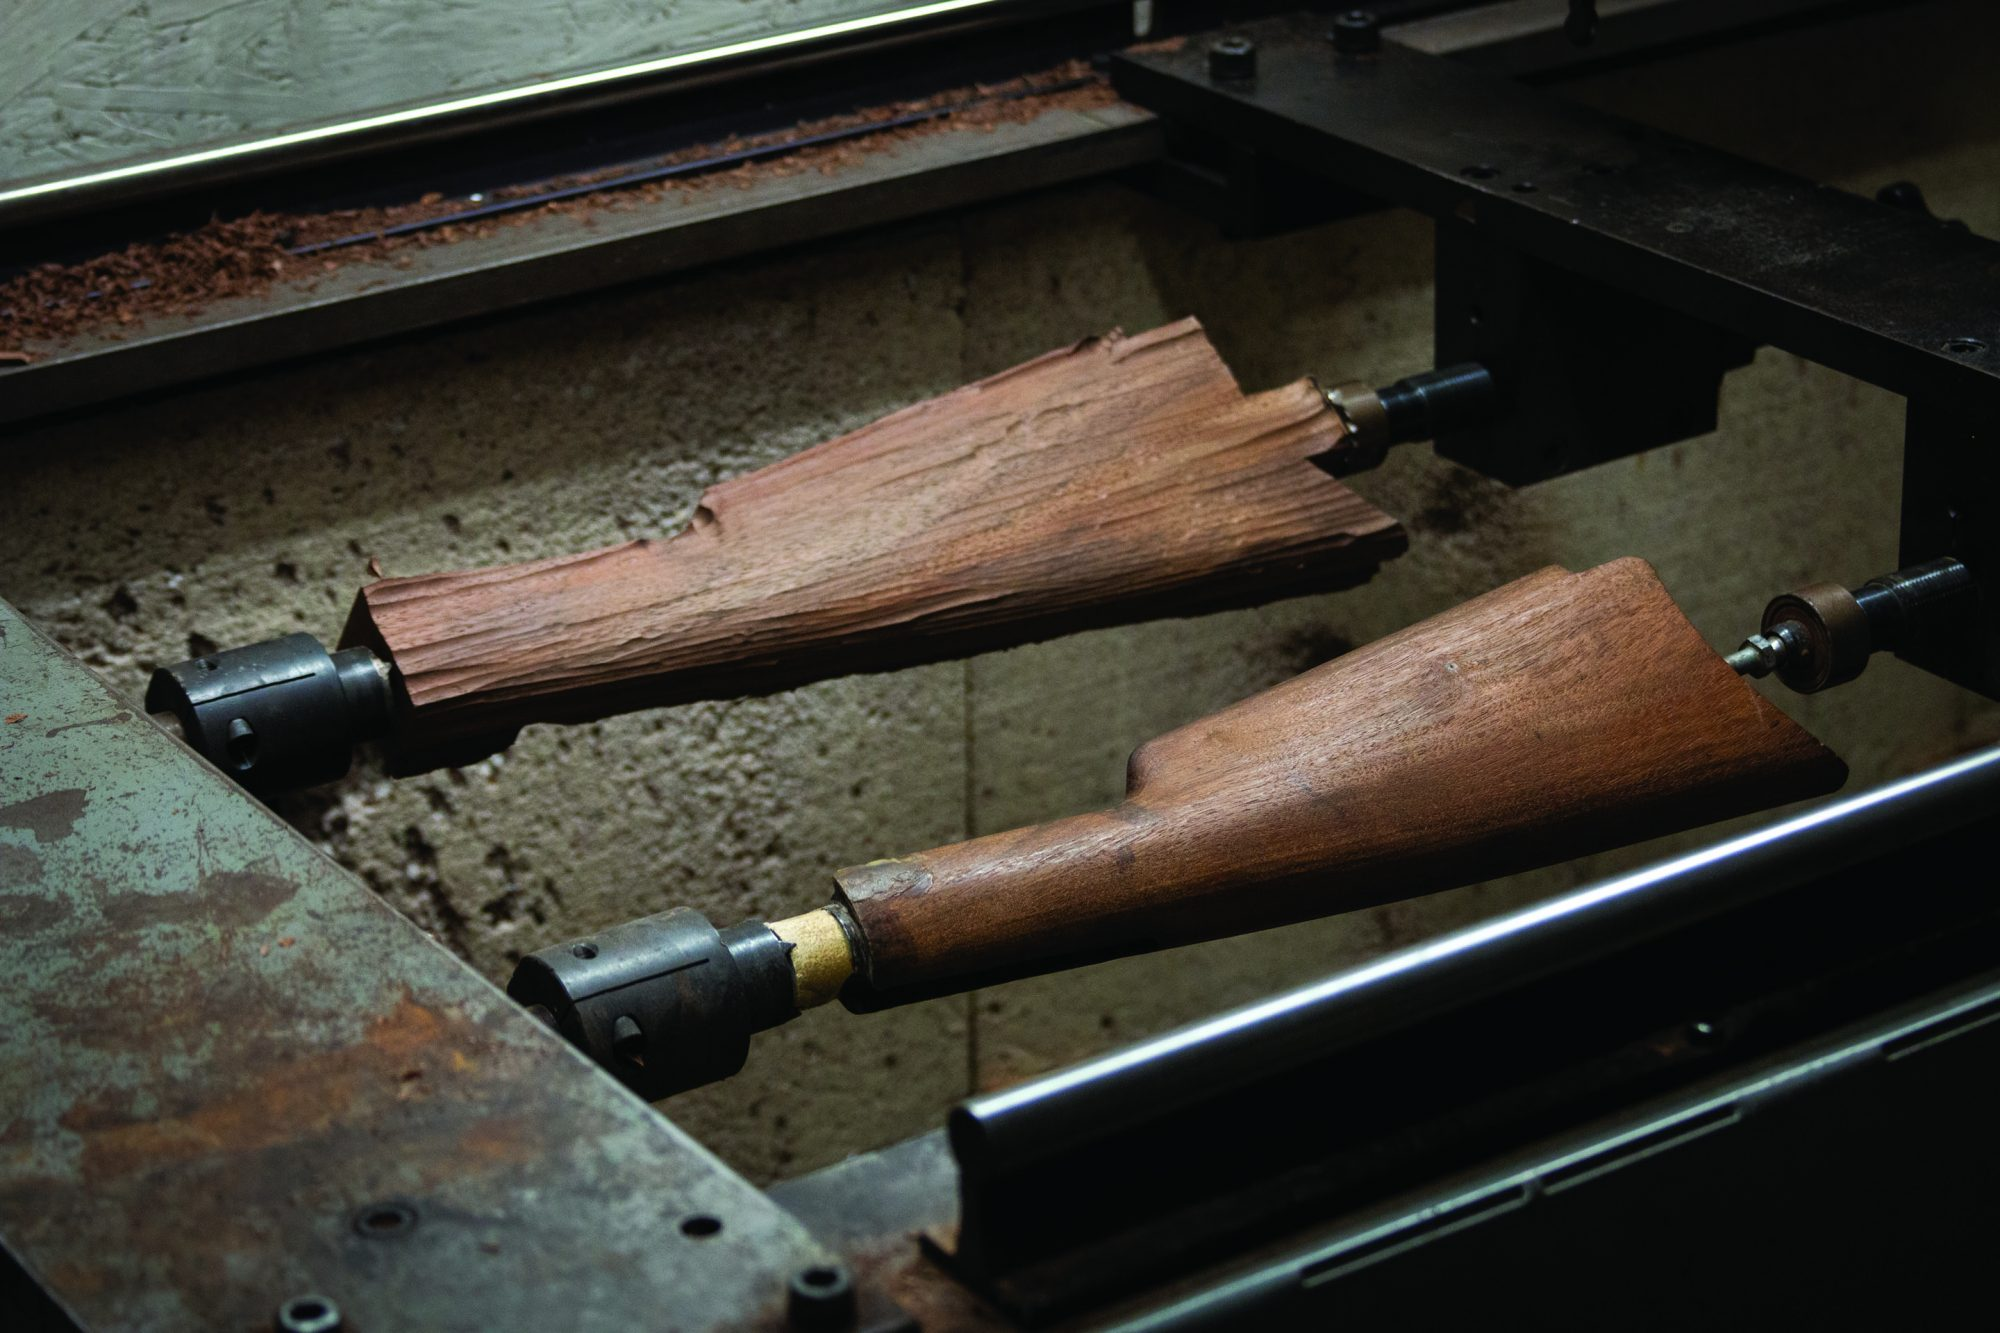 Photo of a Winchester Model 1892 from 1900 undergoing restoration in 2019 by Turnbull Restoration Co. of Bloomfield, NY